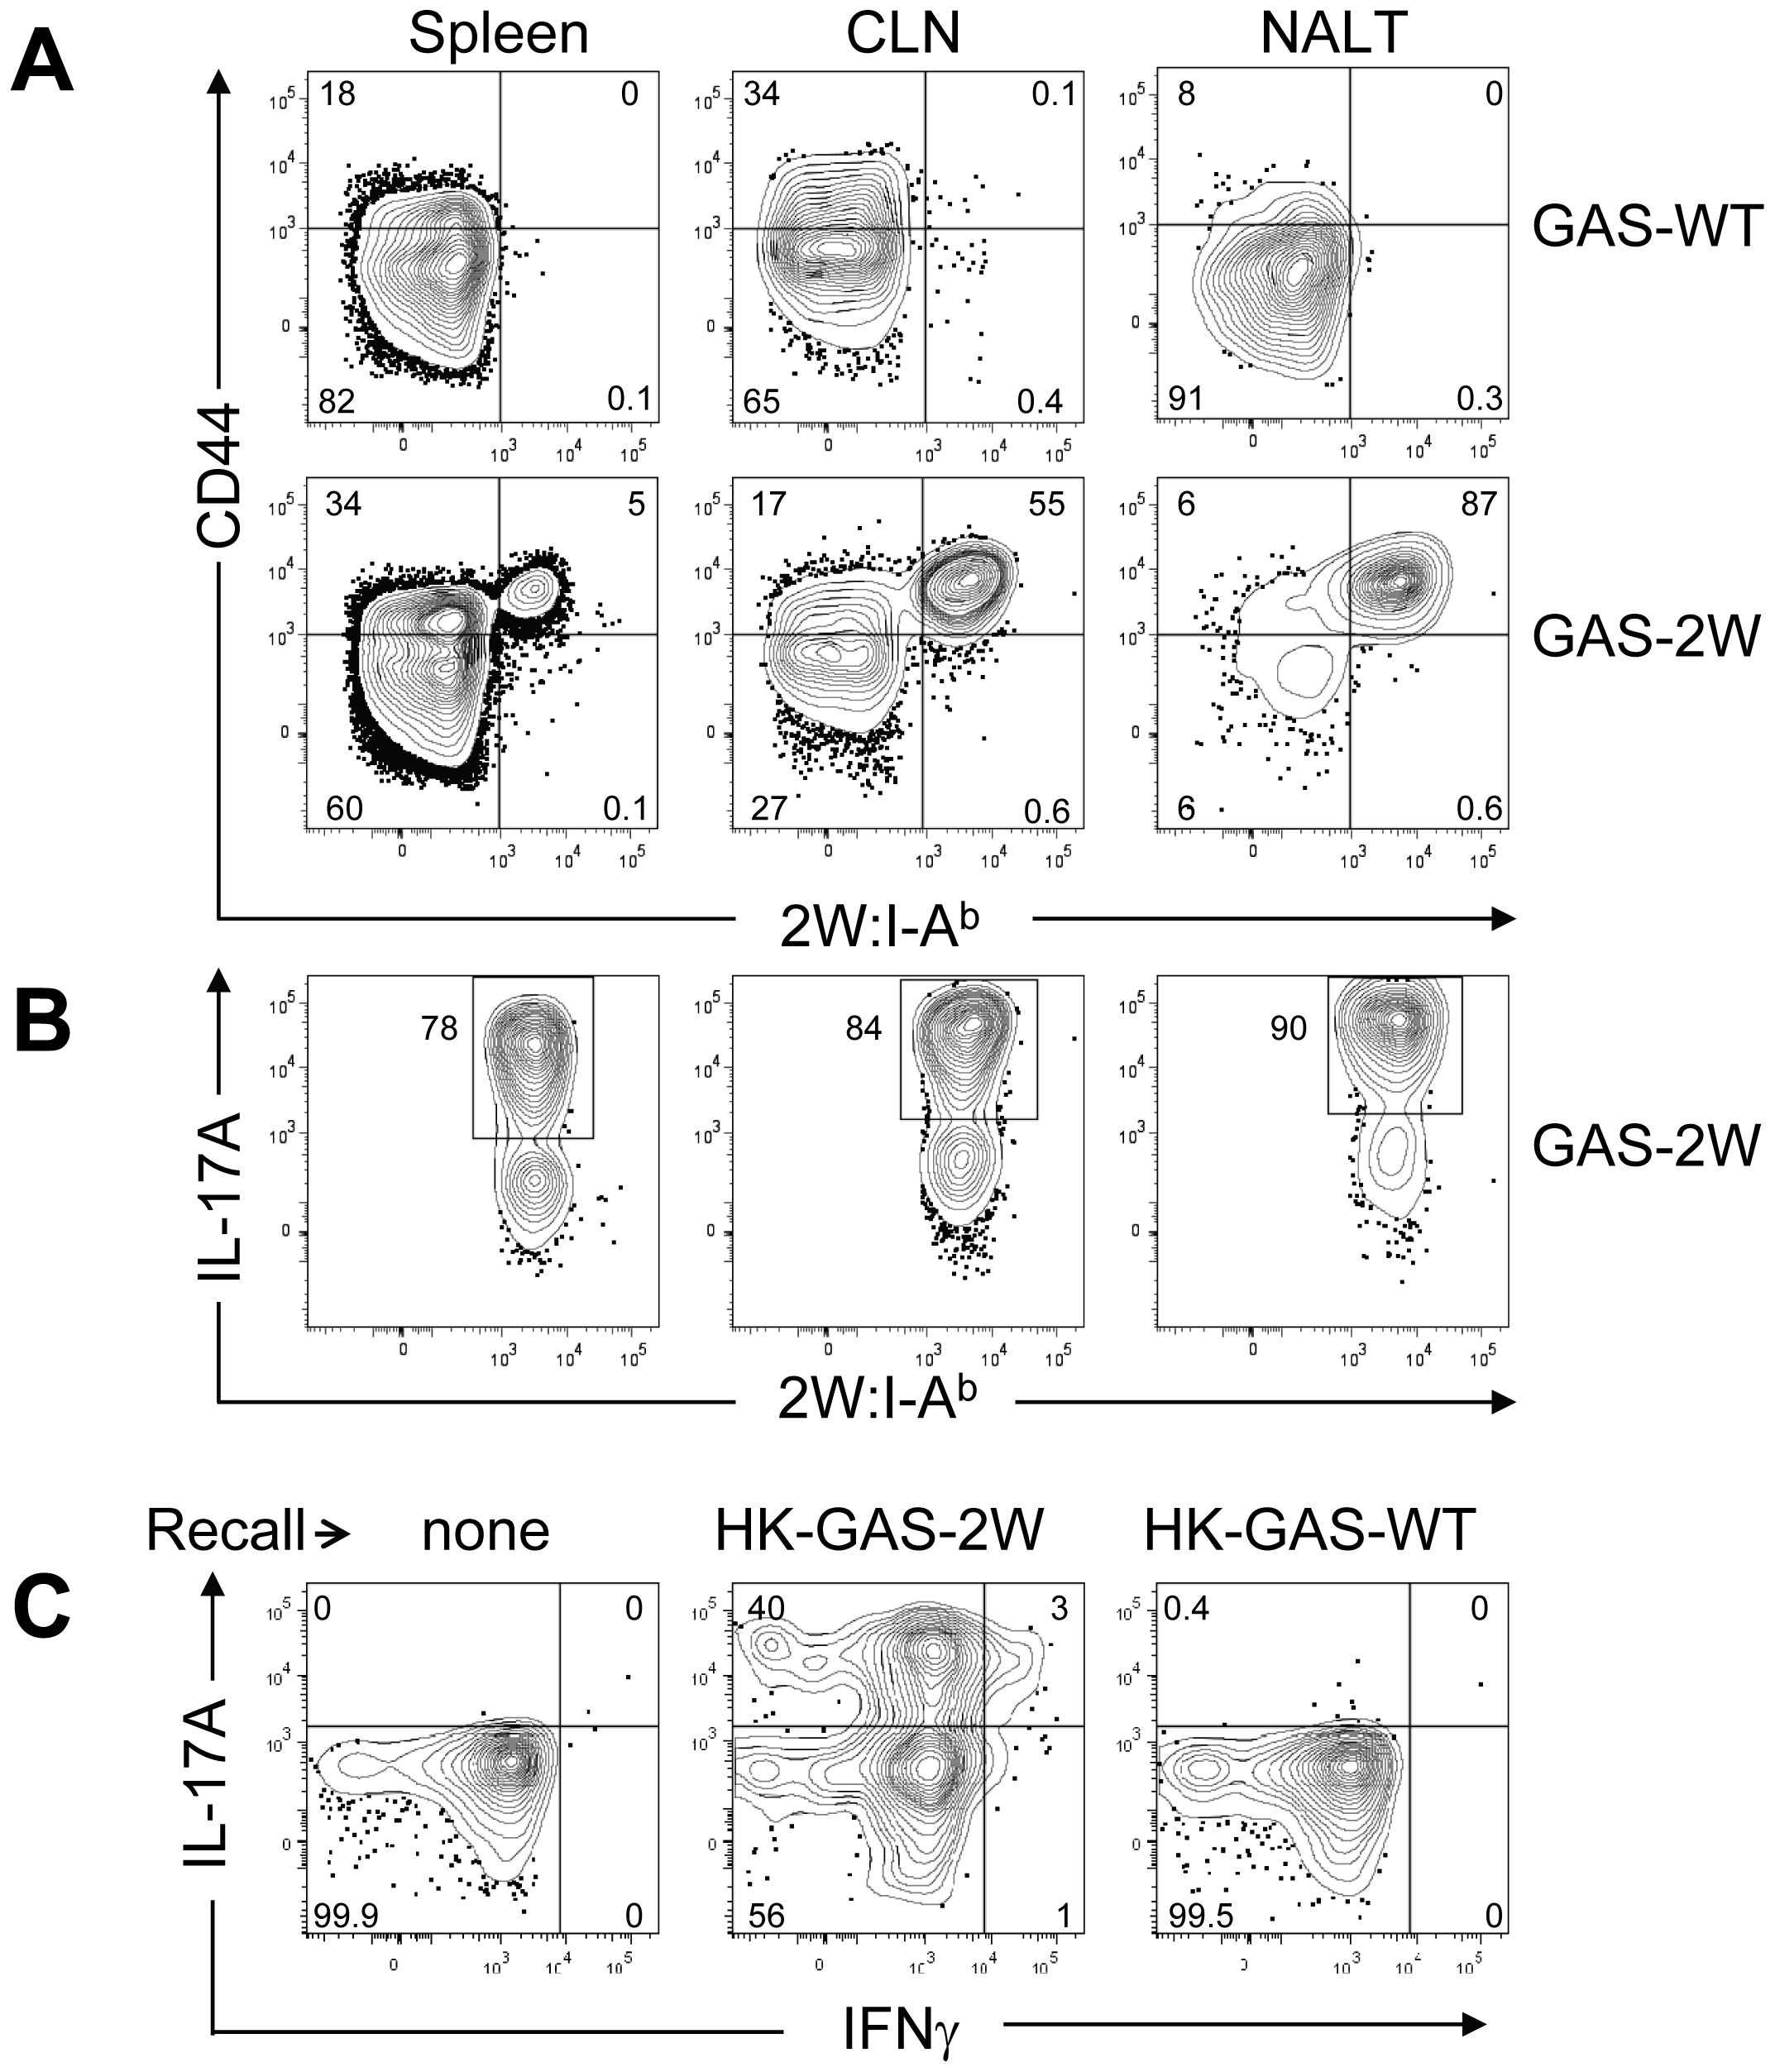 Clonal expansion of 2W:I-A<sup>b</sup>-specific CD4<sup>+</sup> T cells and recall of IL-17A is antigen-specific and not due to Superantigens produced by GAS.